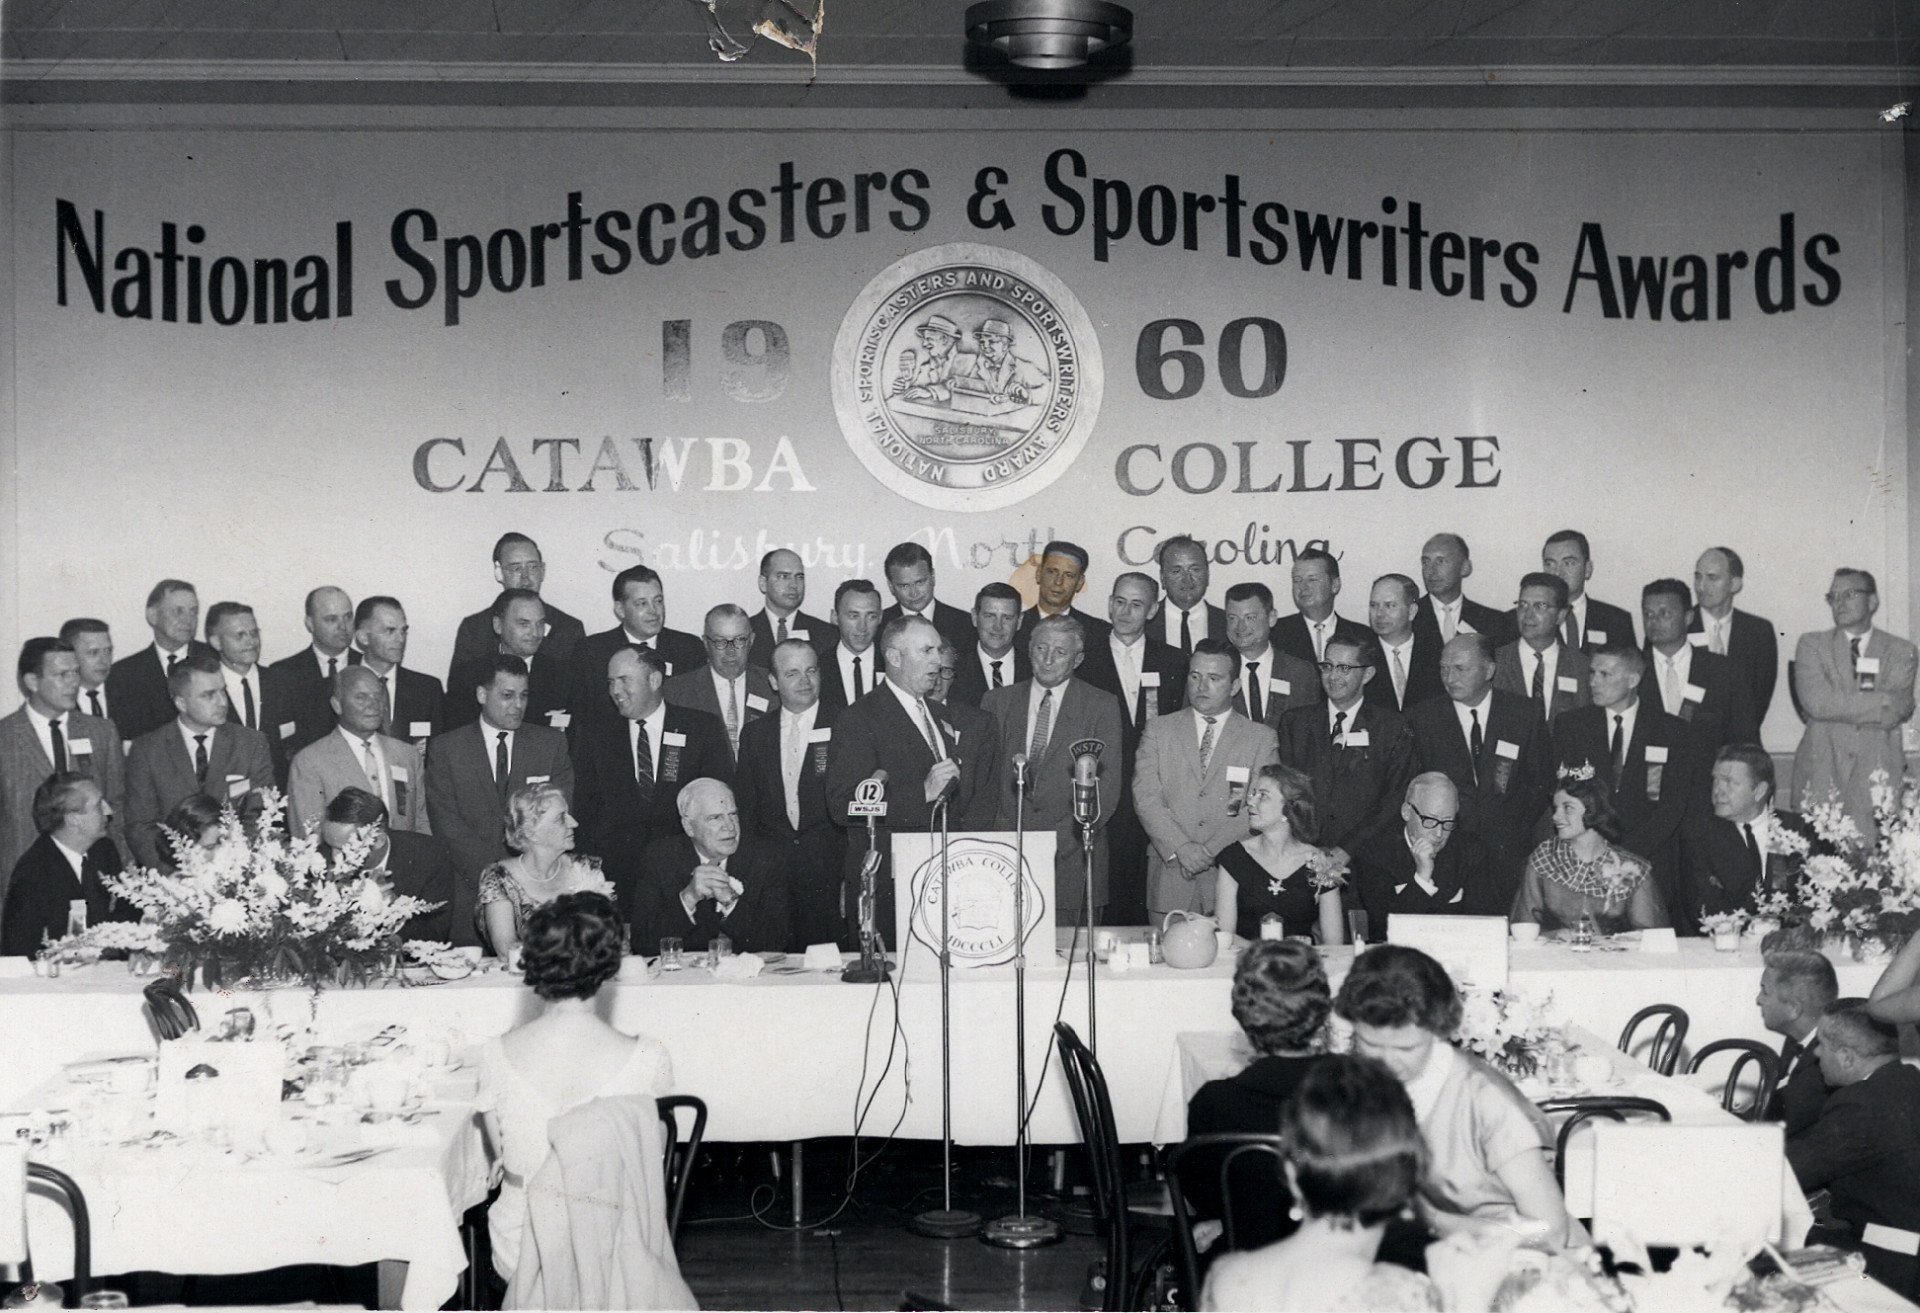 The first NSSA Awards, April 12, 1960 at Catawba College in Salisbury, NC (File photo)